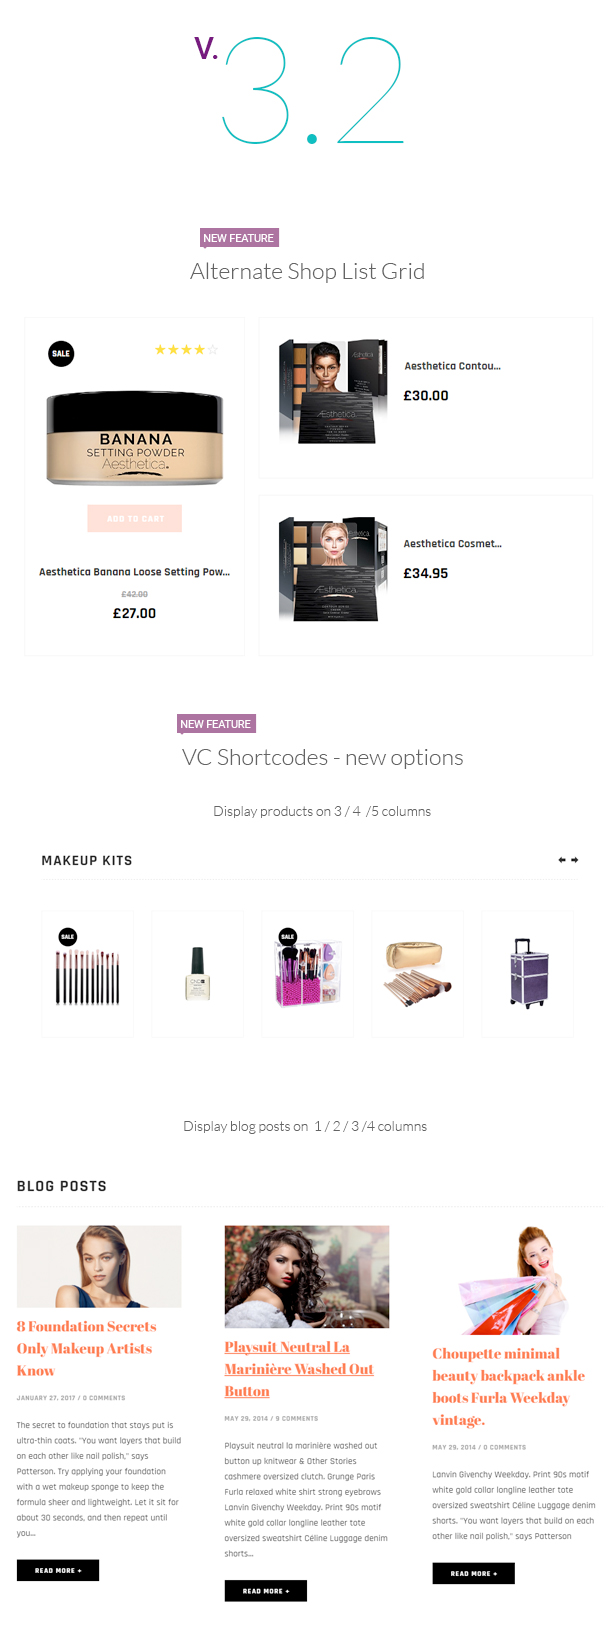 Kingdom - WooCommerce Amazon Affiliates Theme - 6 Kingdom - WooCommerce Amazon Affiliates Theme - kingdom 3 2 - Kingdom – WooCommerce Amazon Affiliates Theme